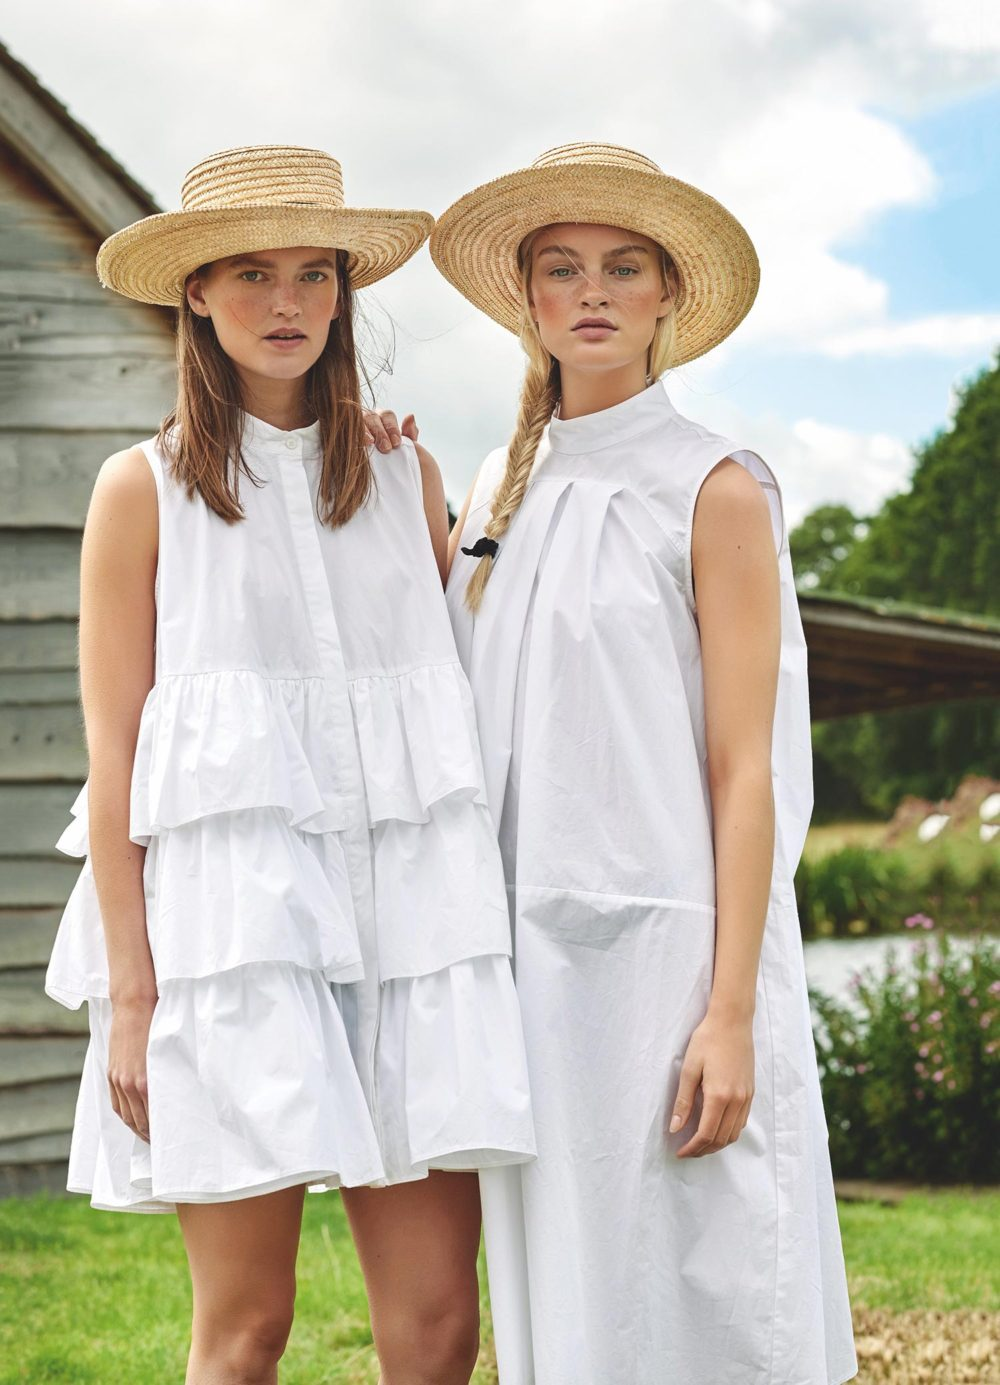 white dresses country style, straw hats